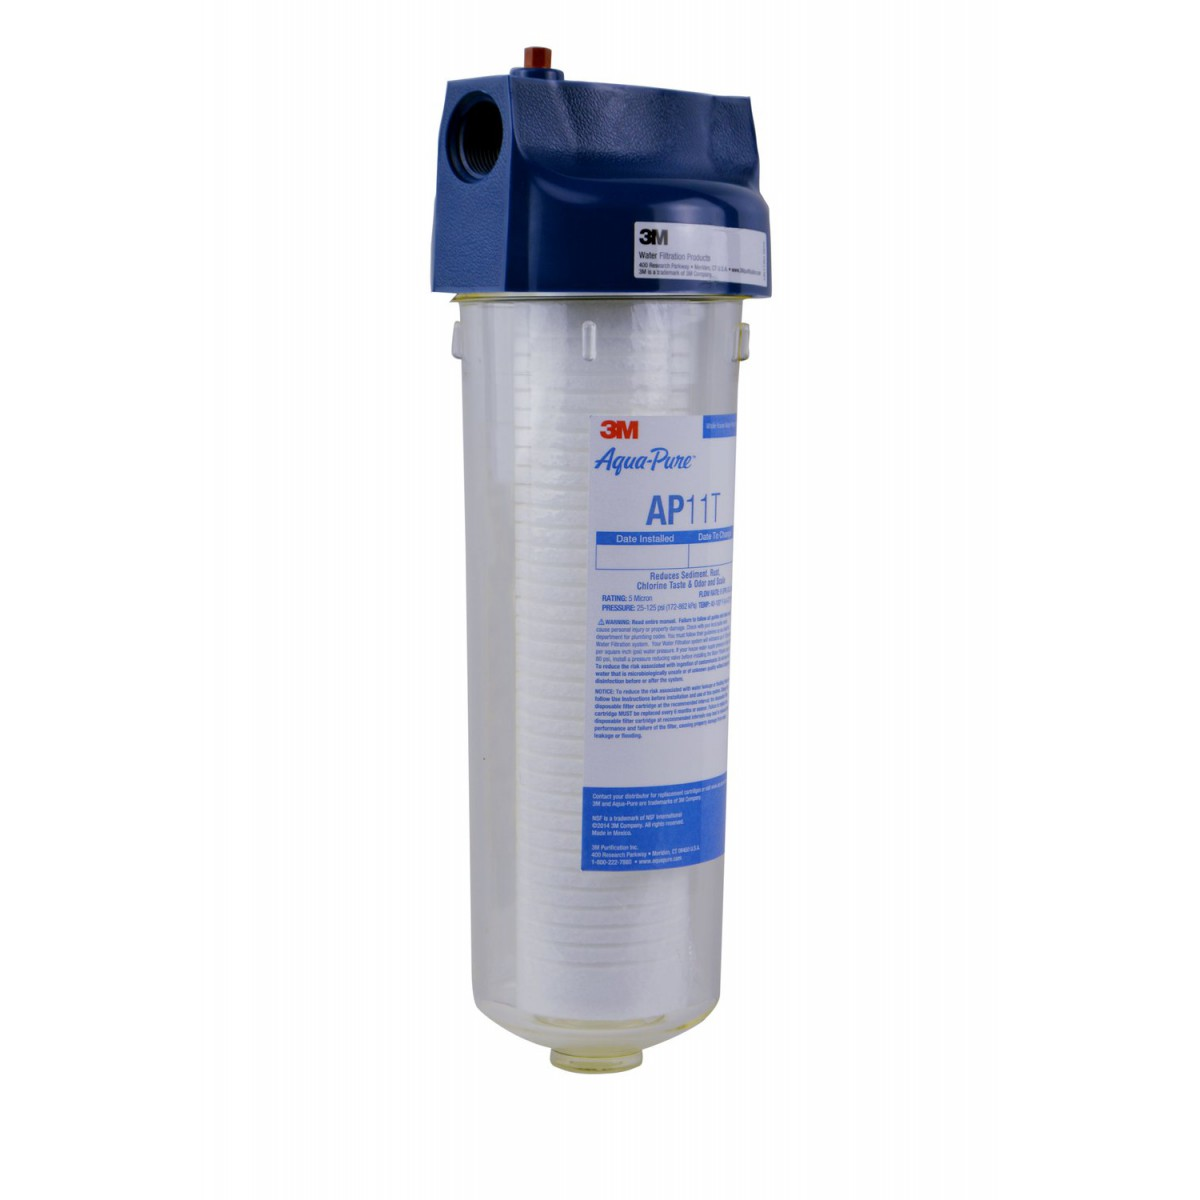 3m Aqua Pure Ap101t Whole House Water Filter System